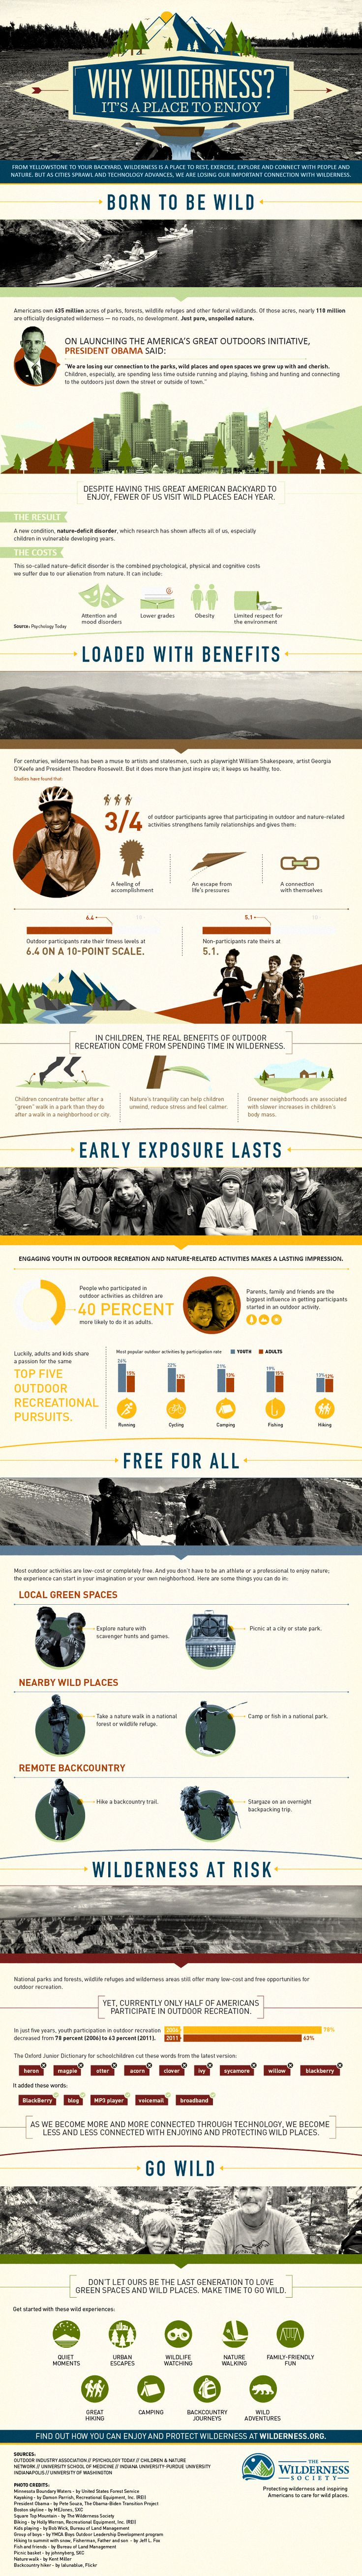 As this recent infographic published by The Wilderness Society shows, a child who spends time exploring out in nature is more likely to be thin and fit, get better grades in school, and be free of emotional problems than his or her couch potato or mallrat counterparts.